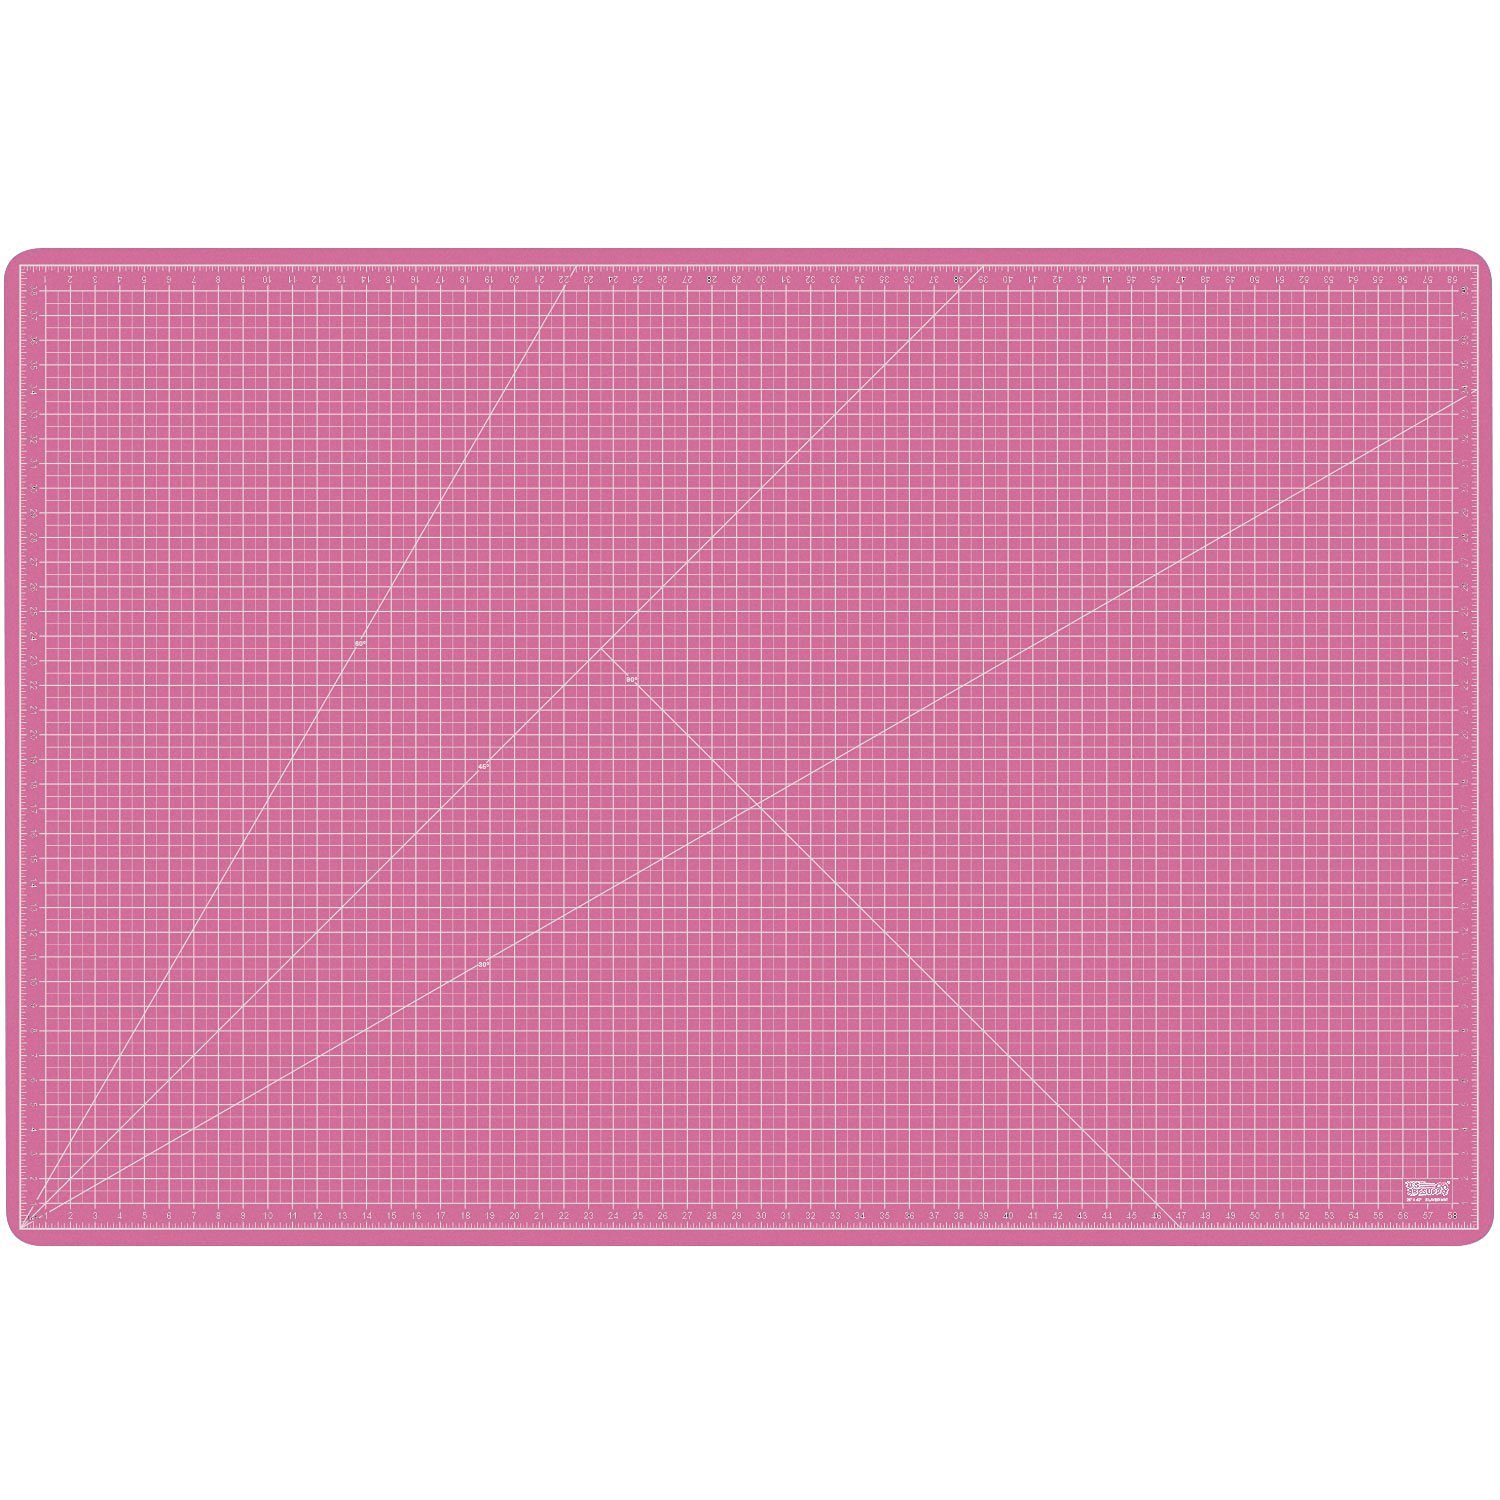 "US Art Supply 40"" x 60"" PINK/BLUE Professional Self Healing 5-Ply Double Sided Durable Non-Slip PVC Cutting Mat Great for Scrapbooking, Quilting, Sewing and all Arts & Crafts Projects (Choose Green/Black or Pink/Blue Below)"